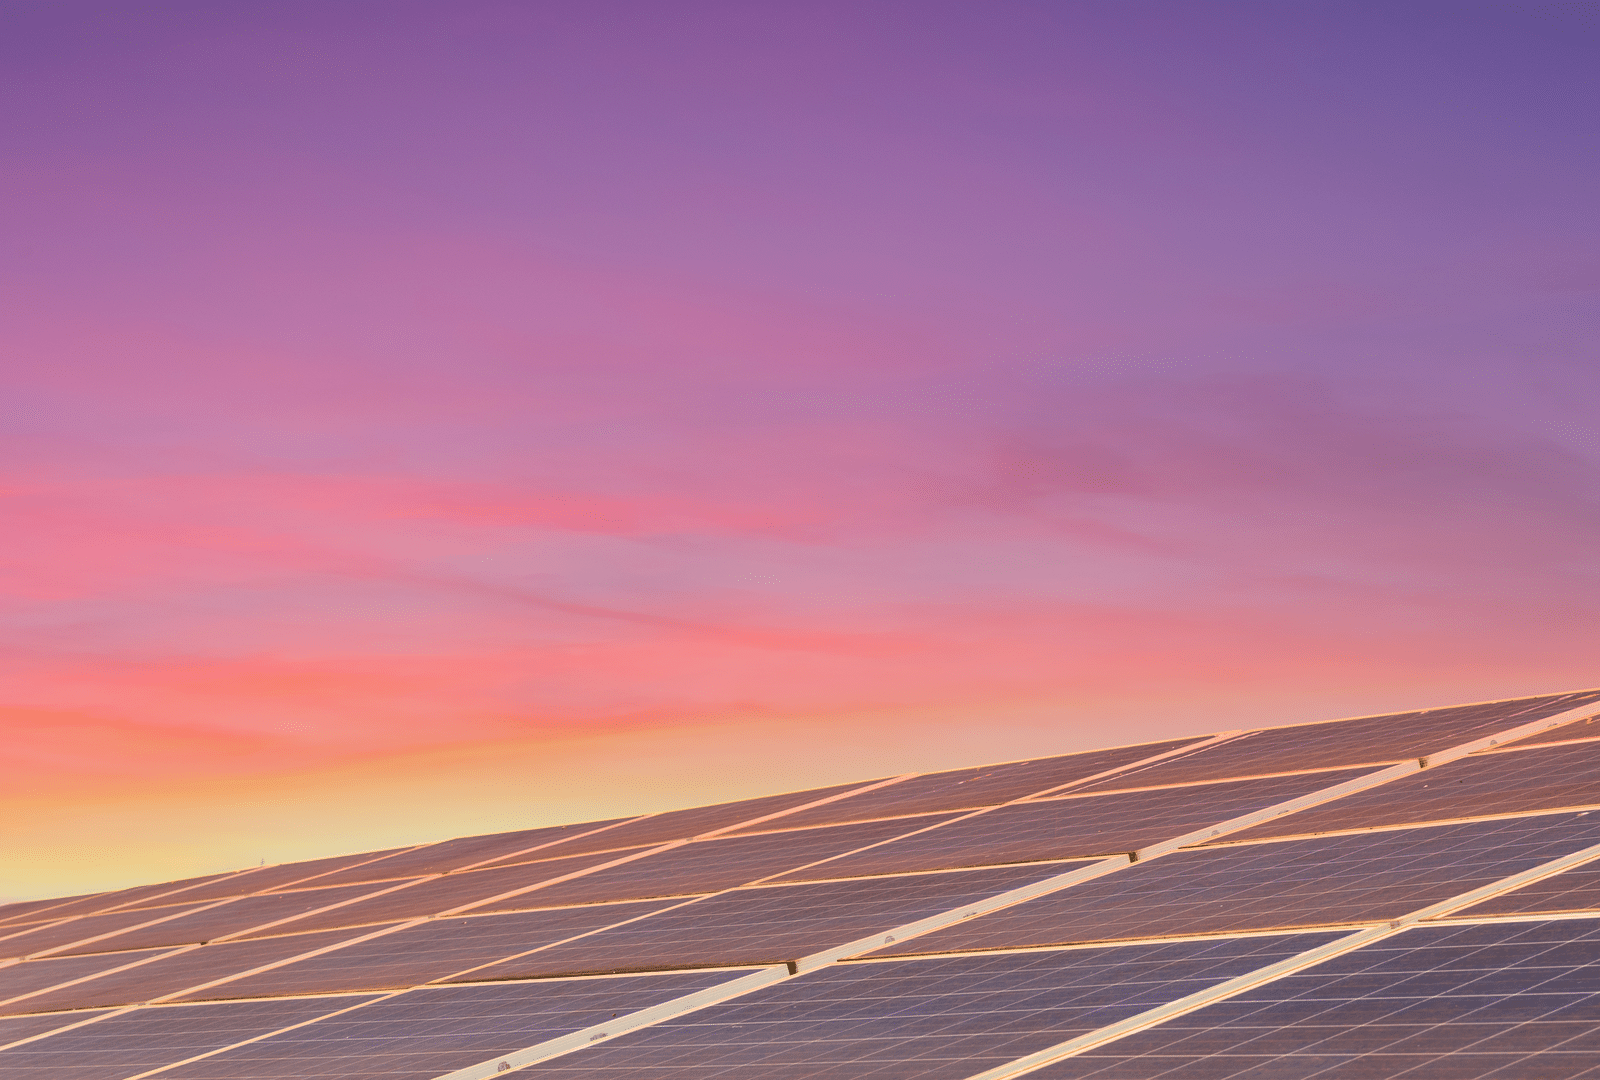 Canadian Solar subsidiary Recurrent Energy has sold its Slate project in California to Goldman Sachs Renewable Power, a project that is expected to be one of the largest PV-plus-storage projects in the U.S.